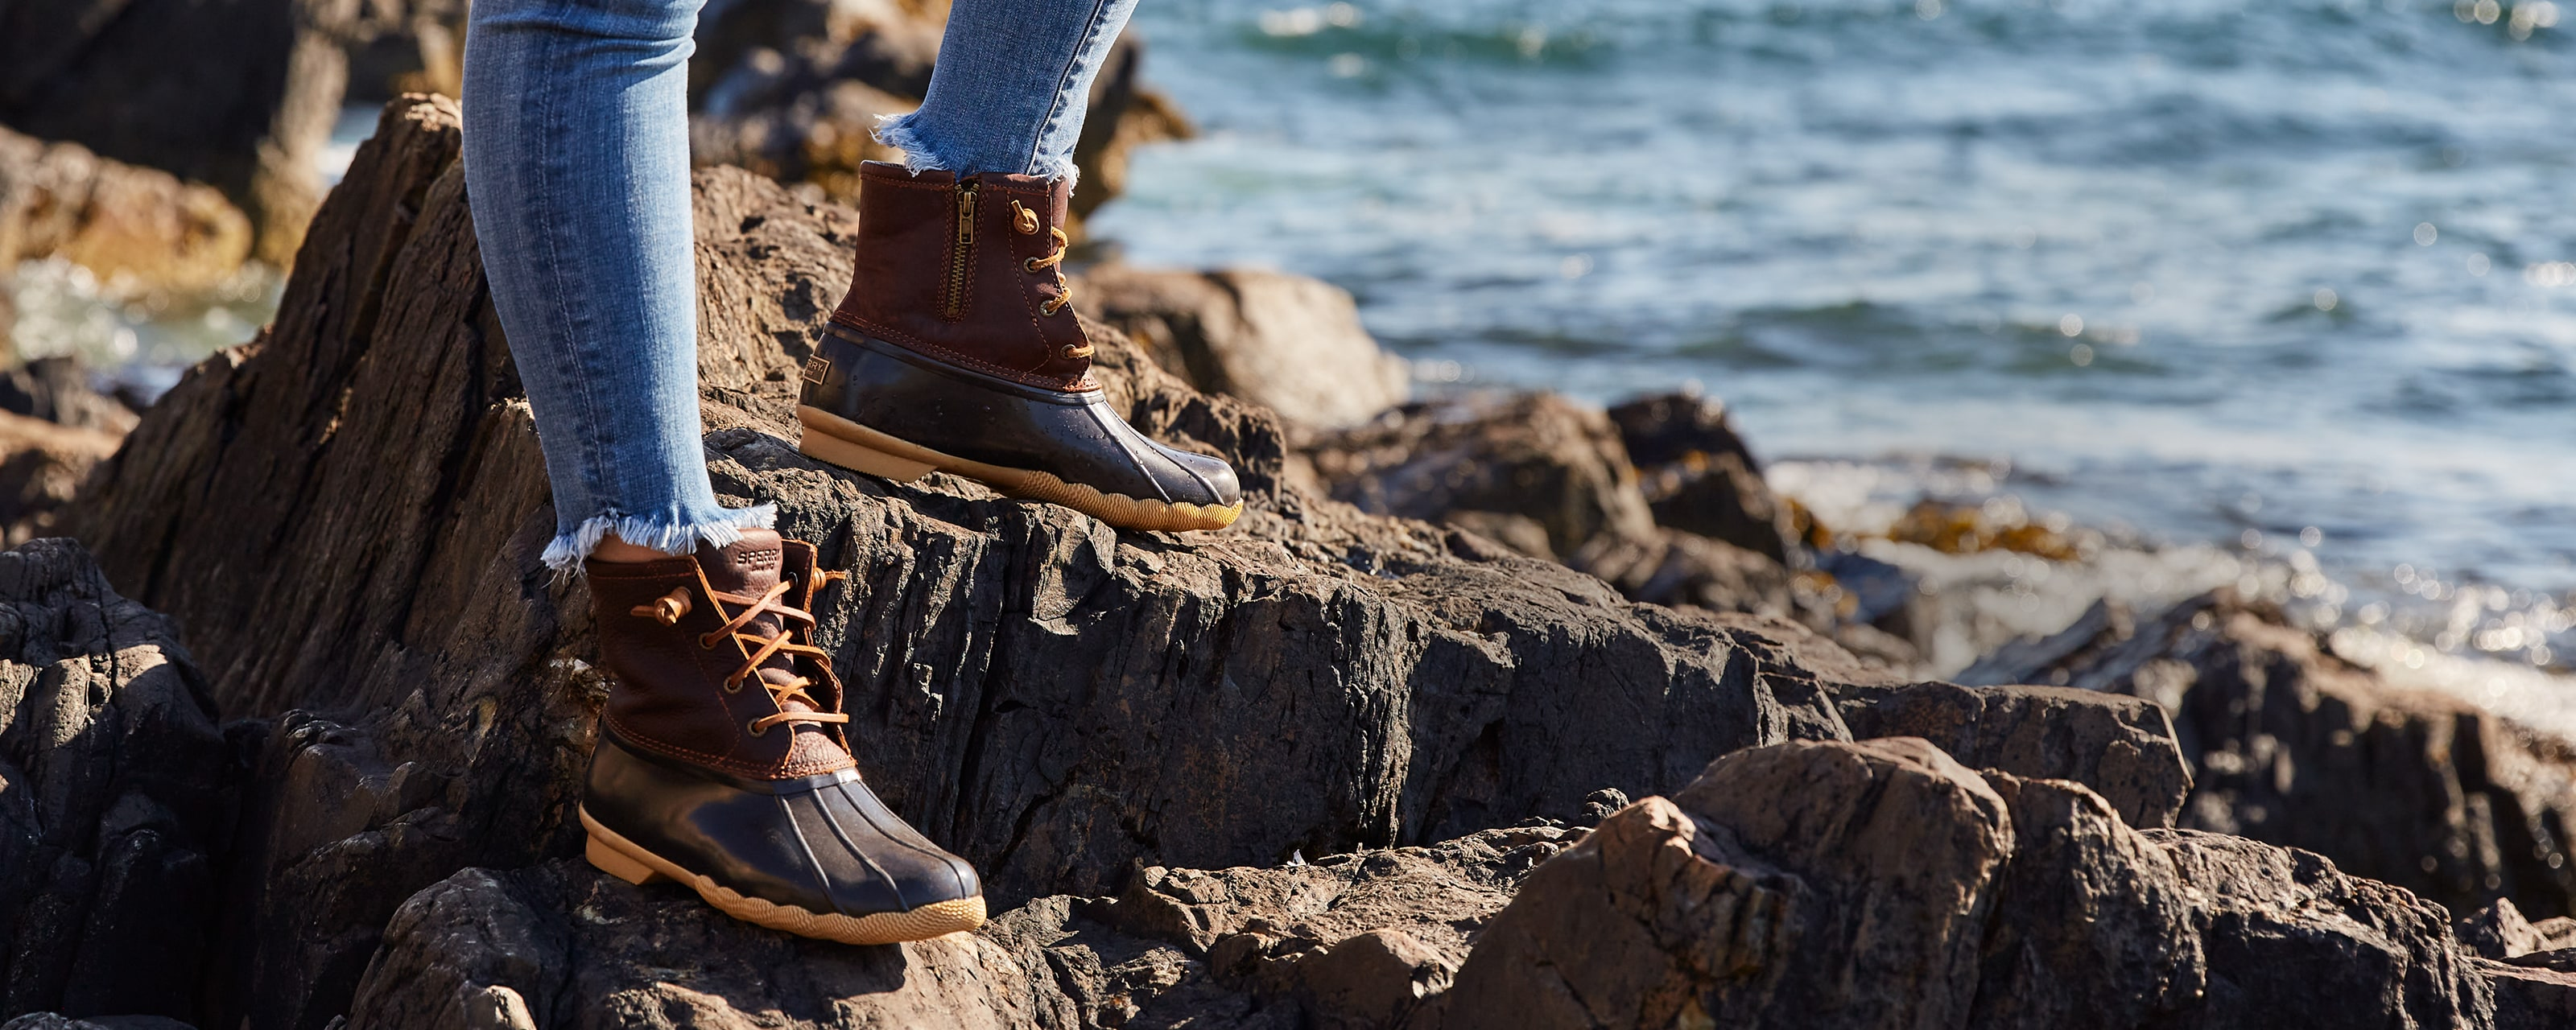 Someone staying on the rocks in Sperry Saltwater shoes.